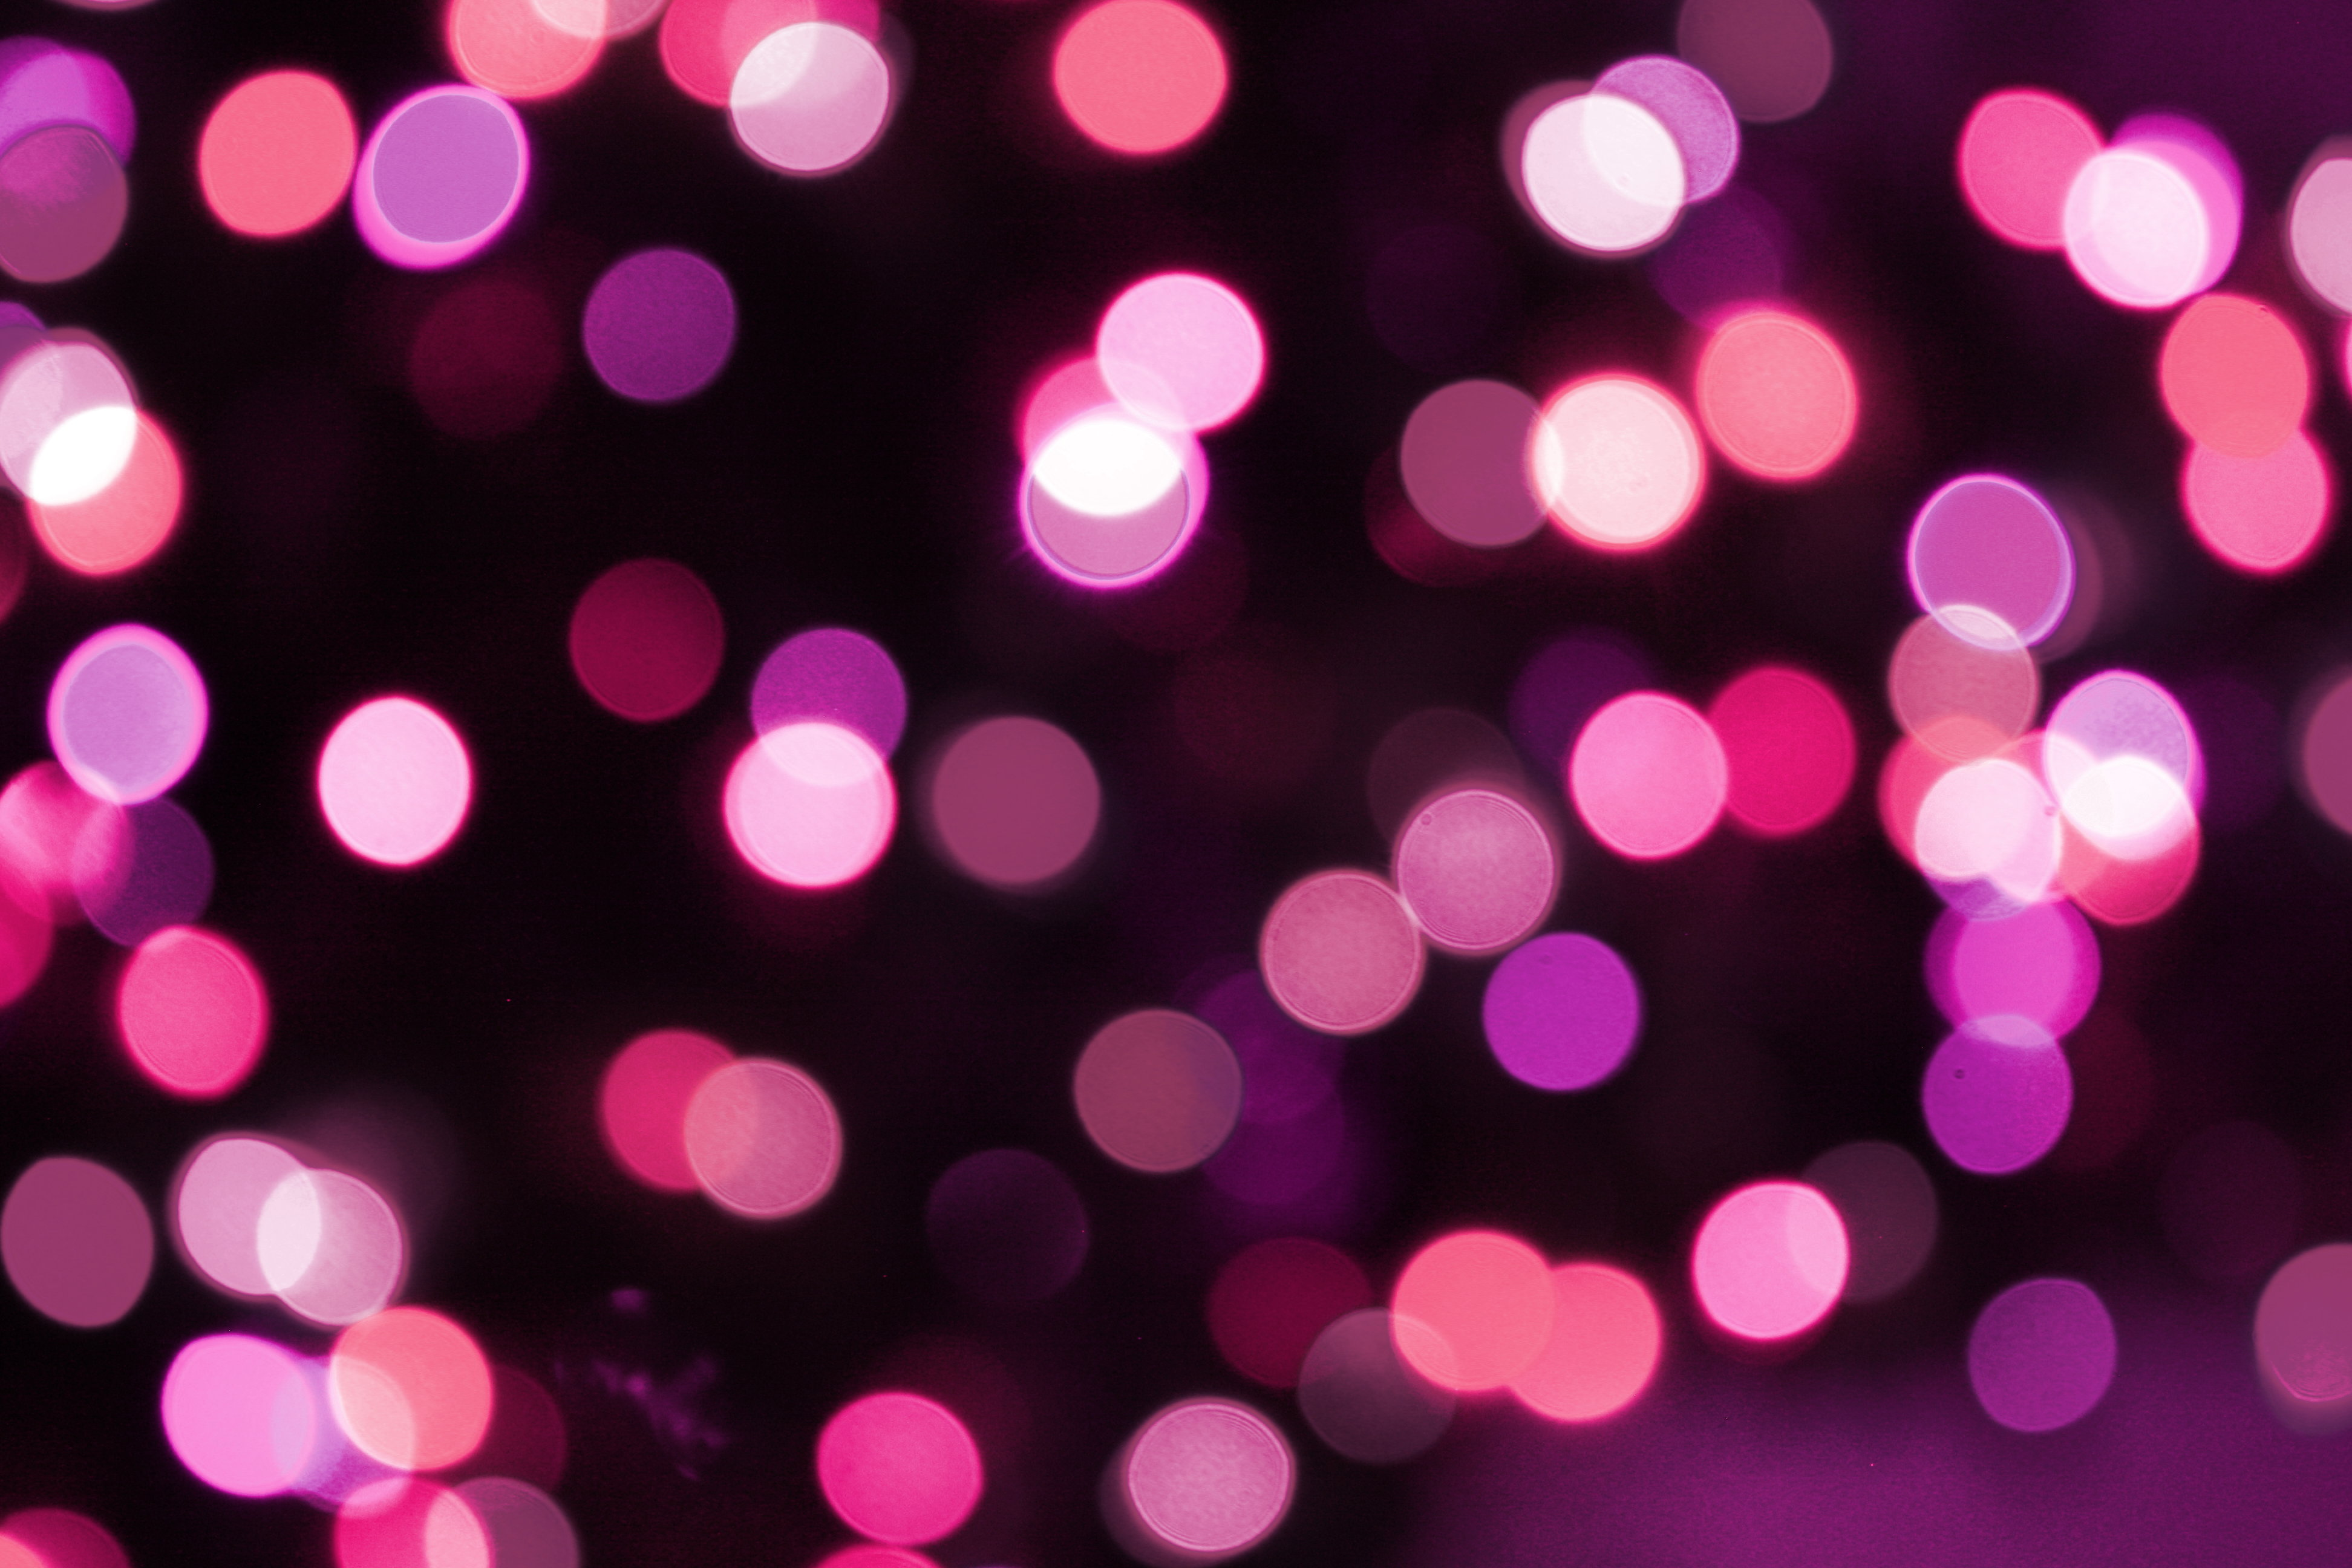 Soft Focus Pink Christmas Lights Texture Picture | Free Photograph ...